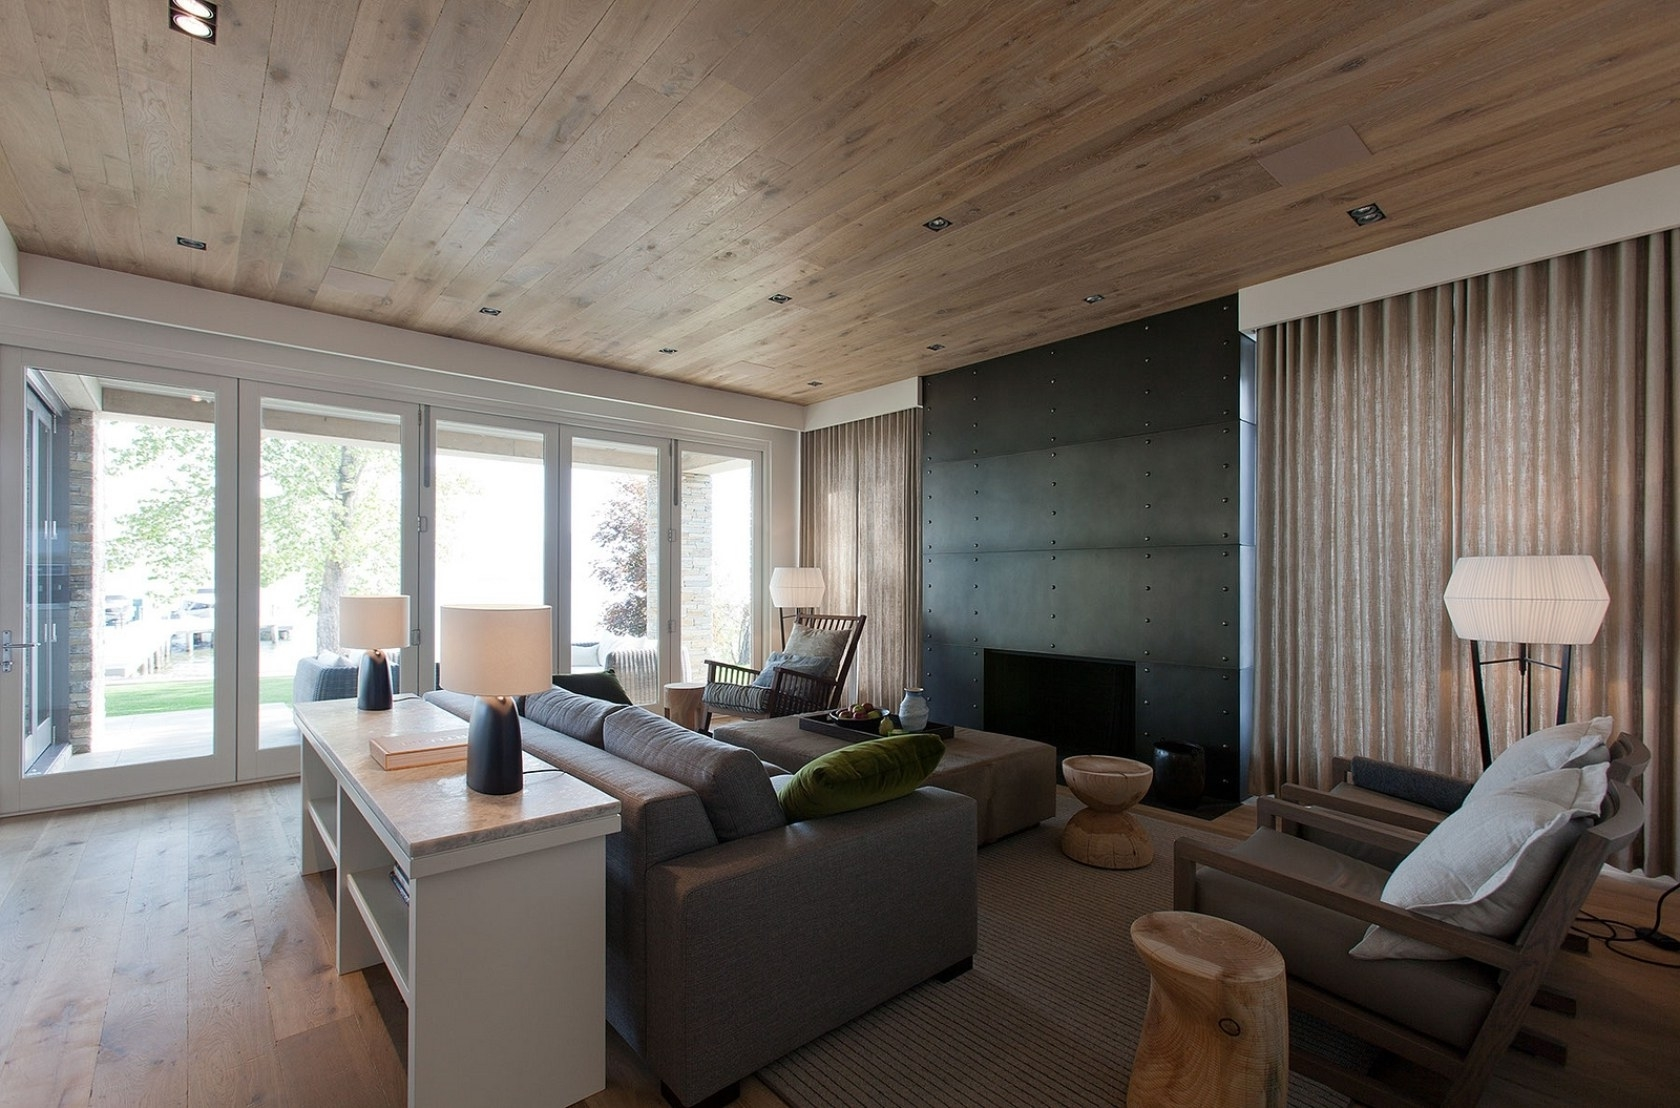 Living room wooden ceiling designs - Featured Image Of Living Room Wood Ceiling Panels